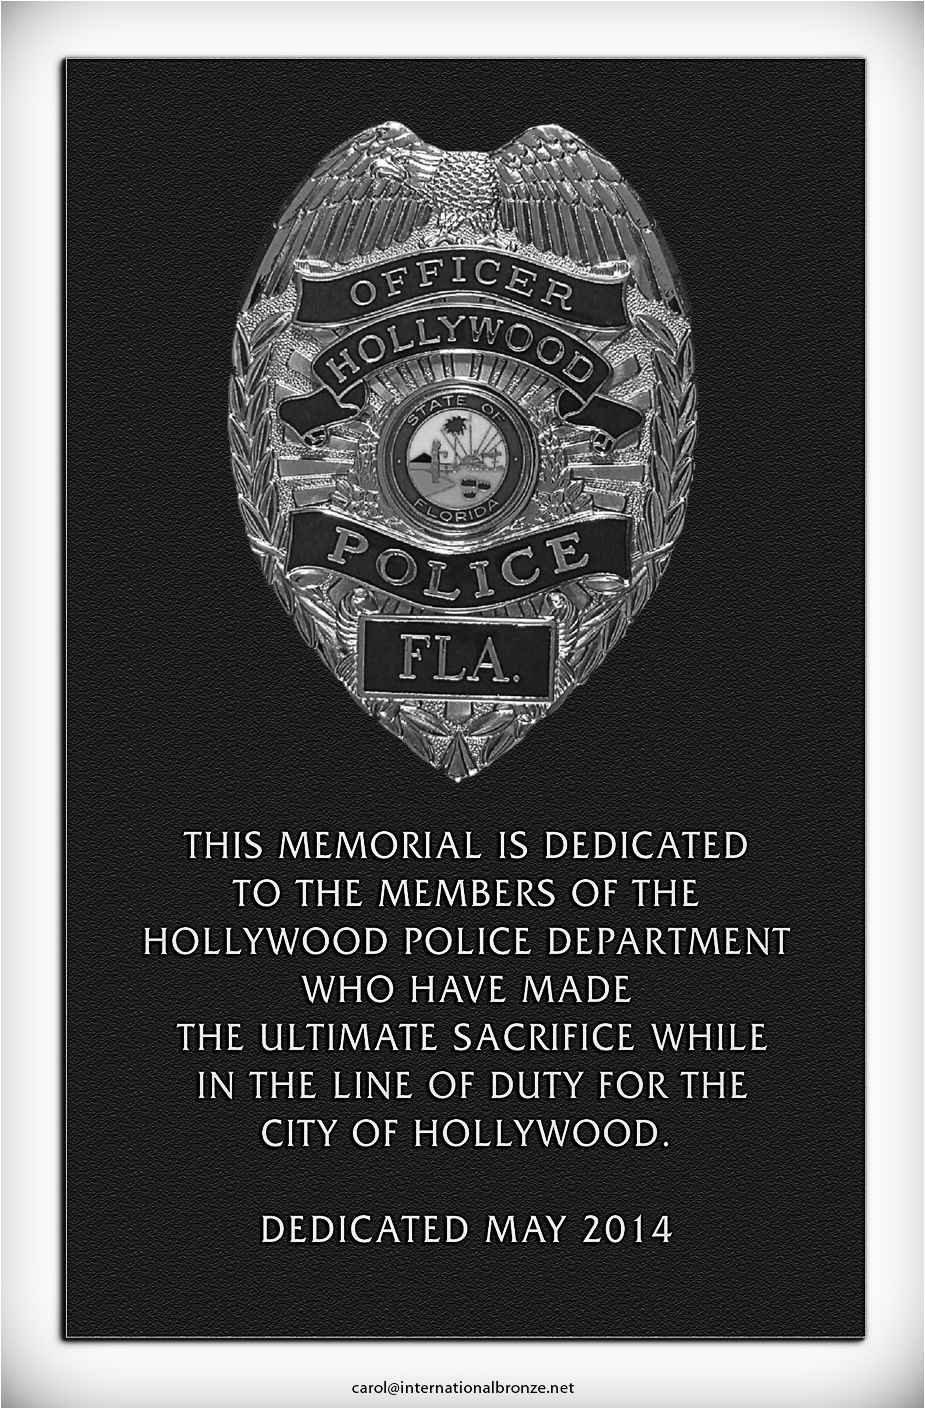 Hollywood is planning a police memorial to honor its fallen officers.